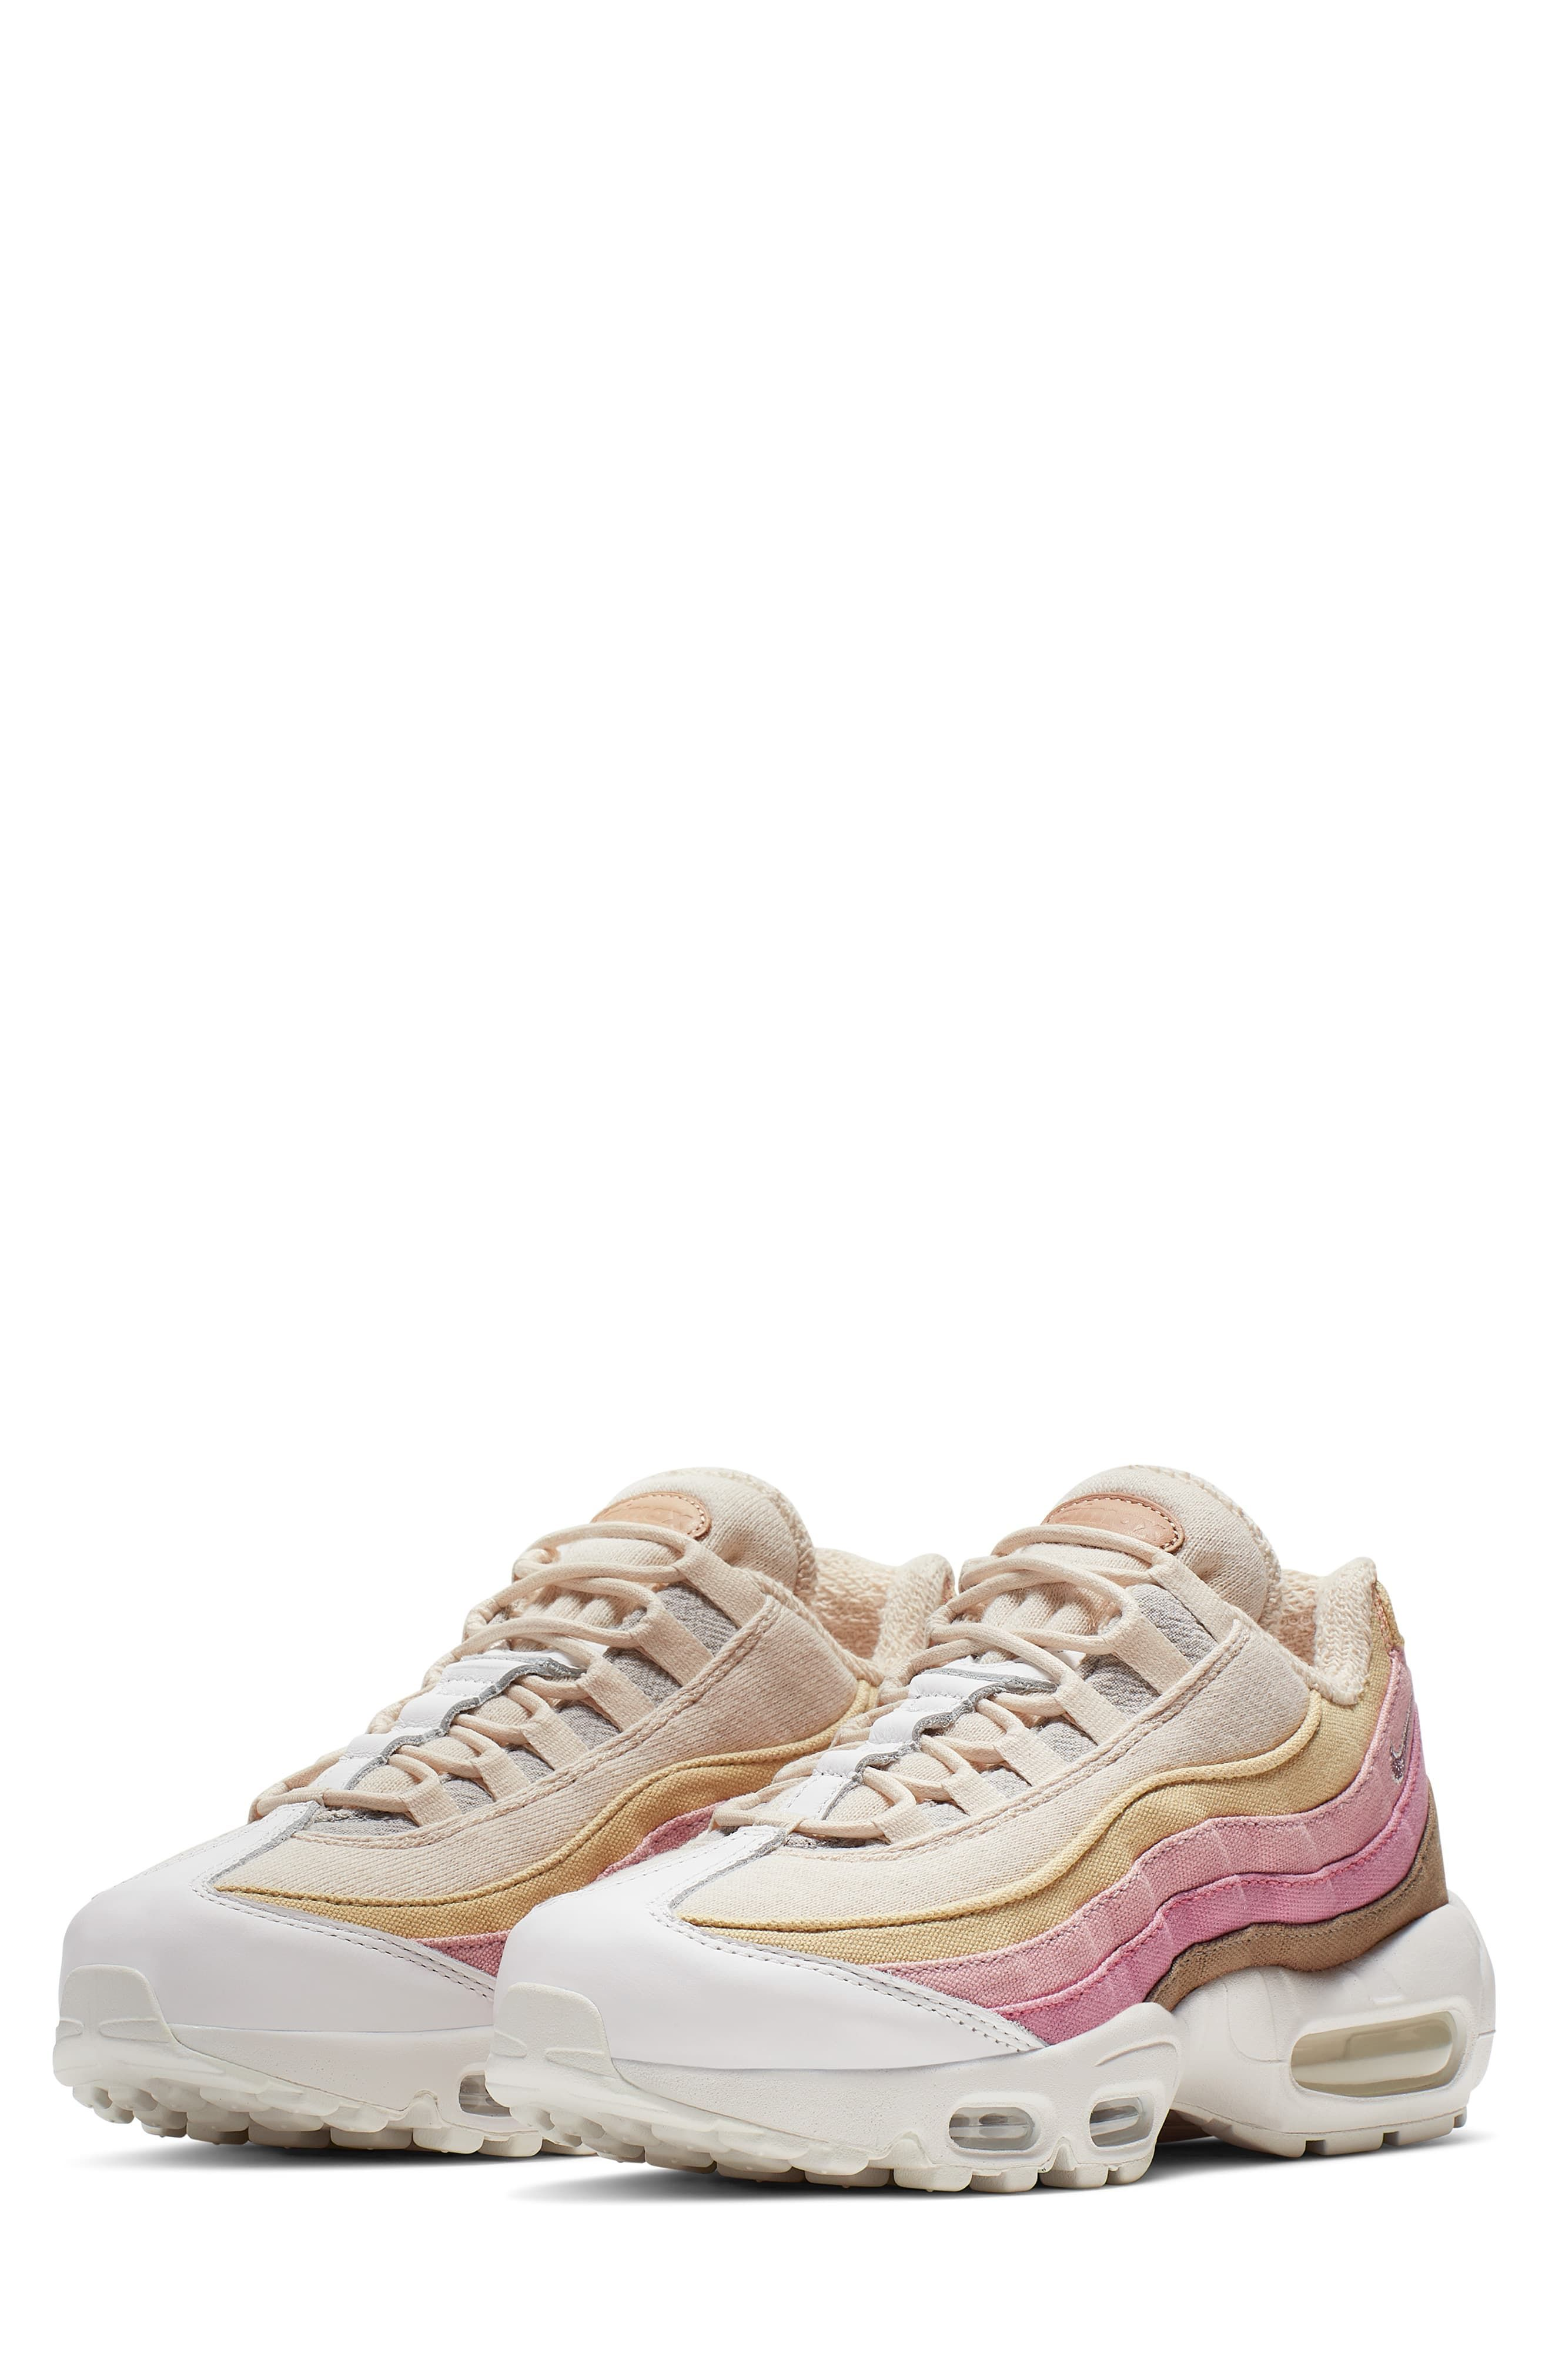 Nike Air Max 95 QS The Plant Color